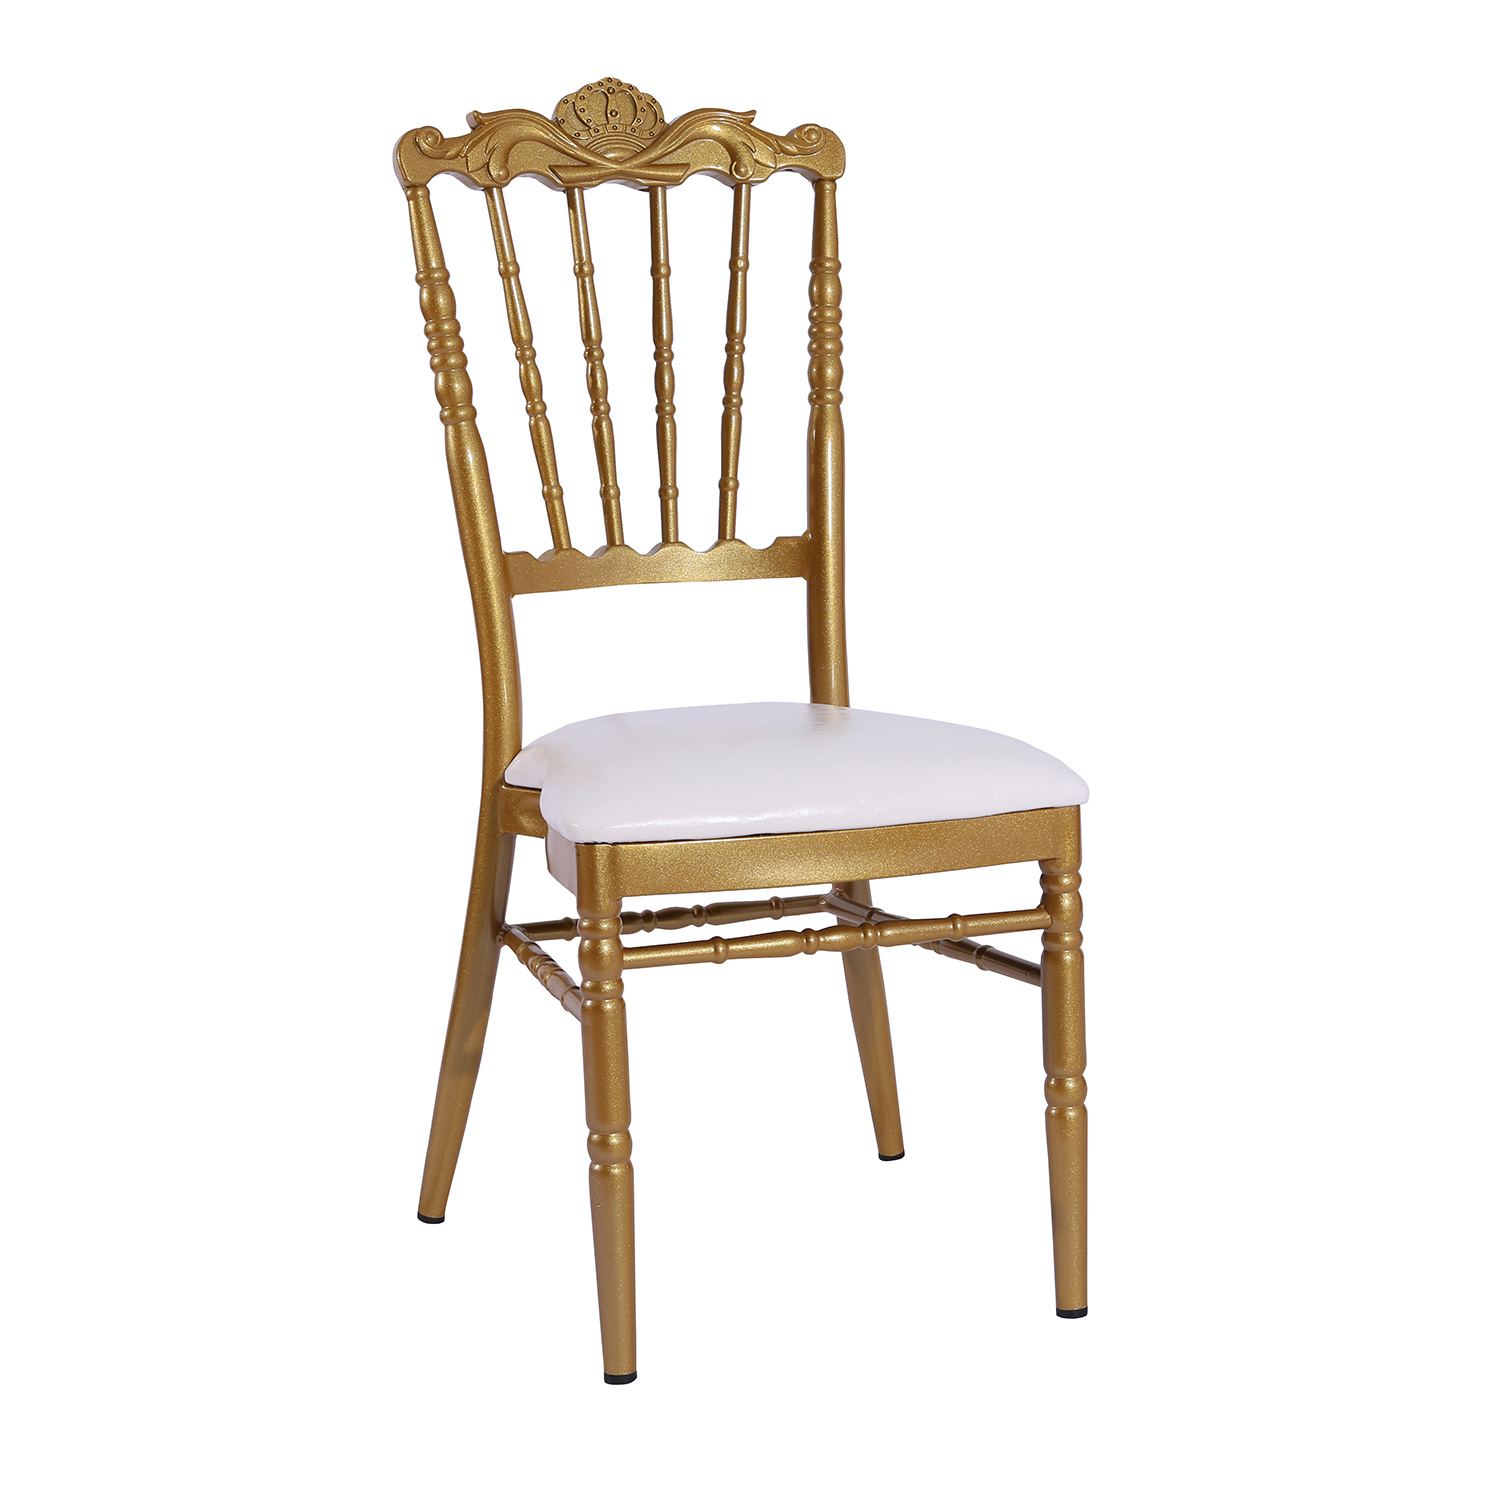 San Dun reliable chiavari chairs with cushions directly sale for promotion-1